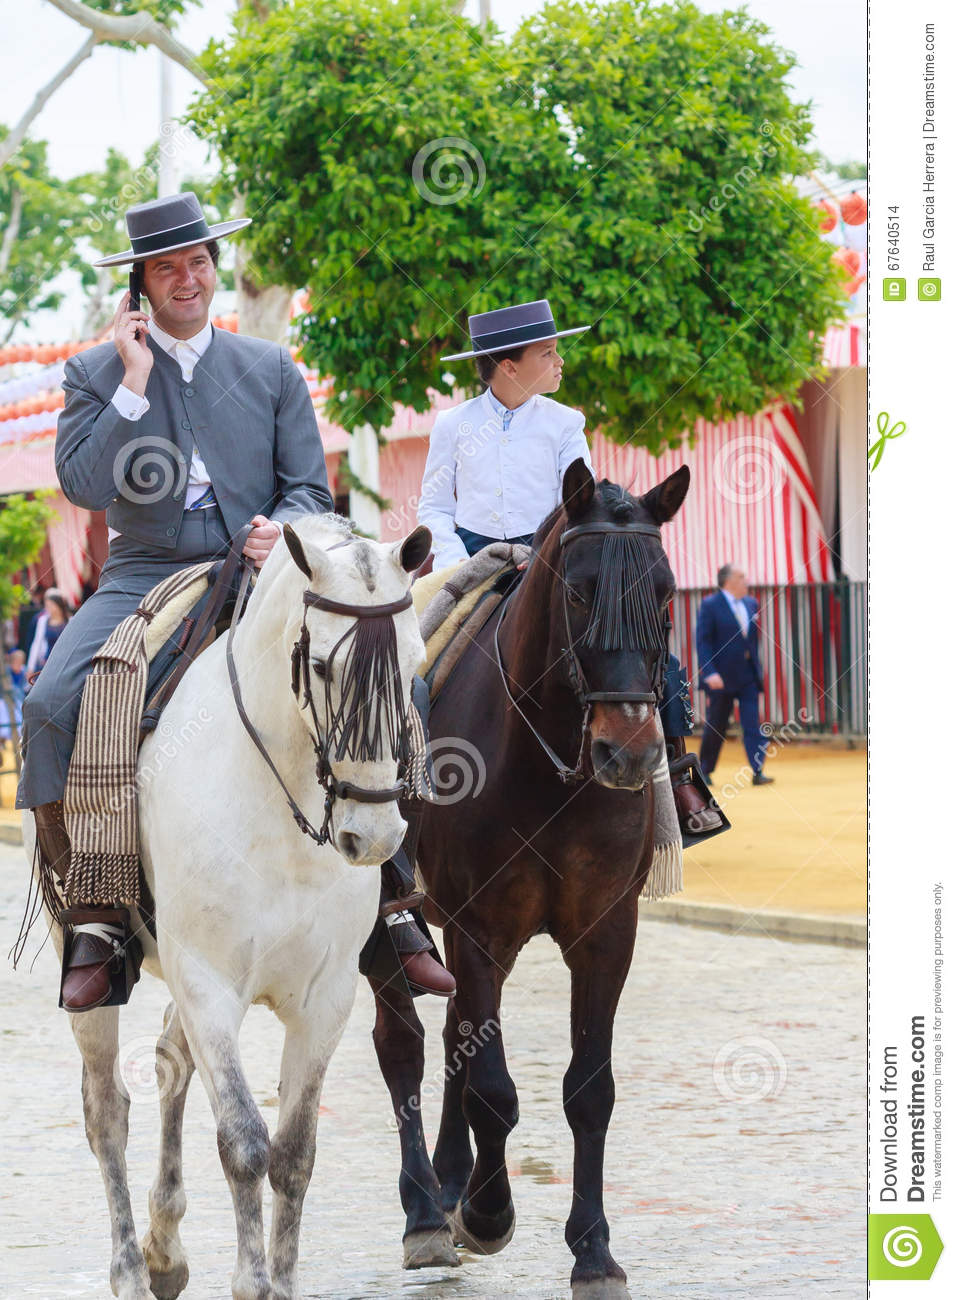 Horse riders taking a walk by the fair of Seville